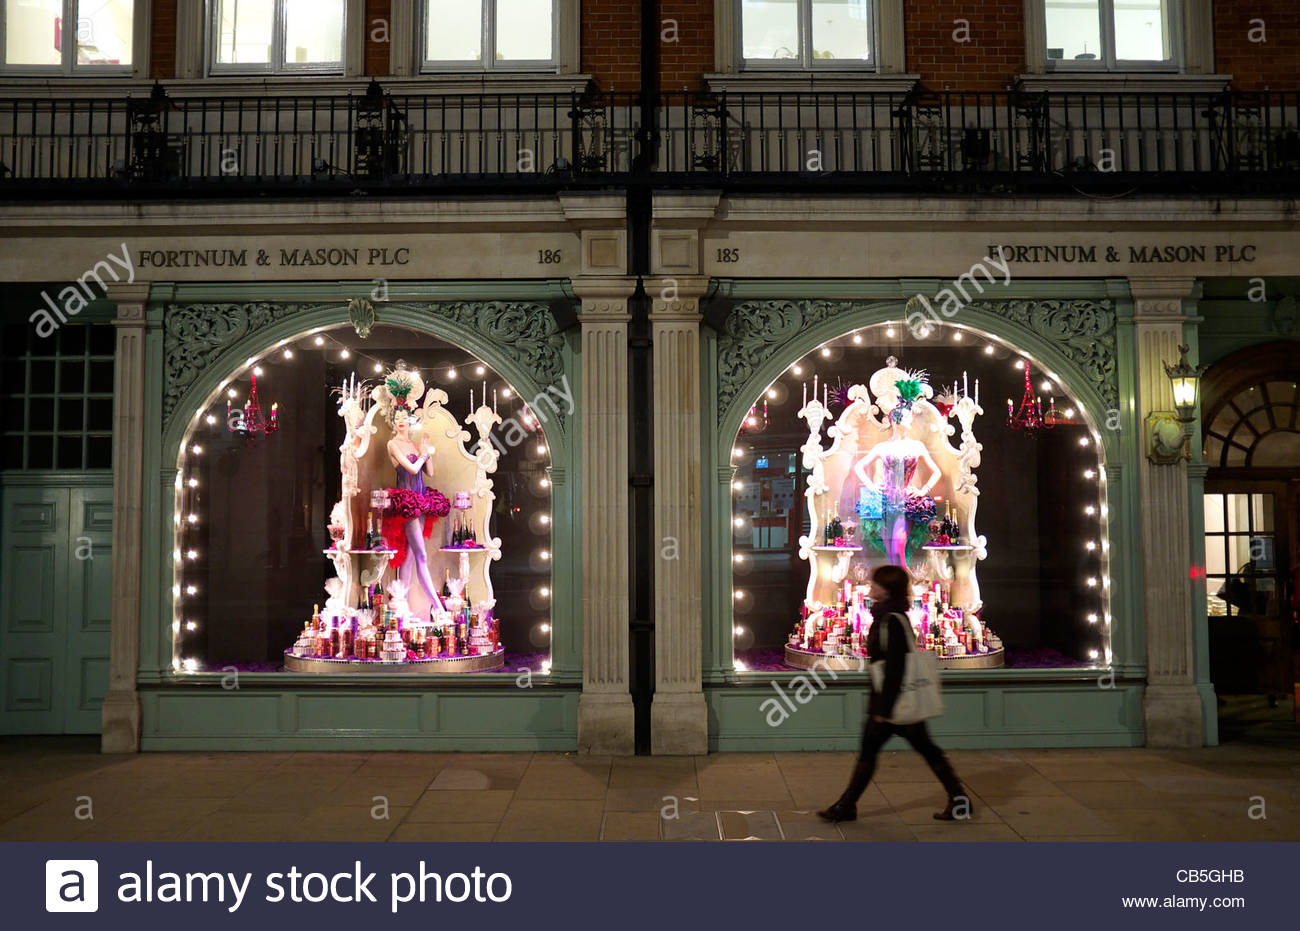 Fortnum mason store with burleseque themed christmas - Fortnum and mason christmas decorations ...